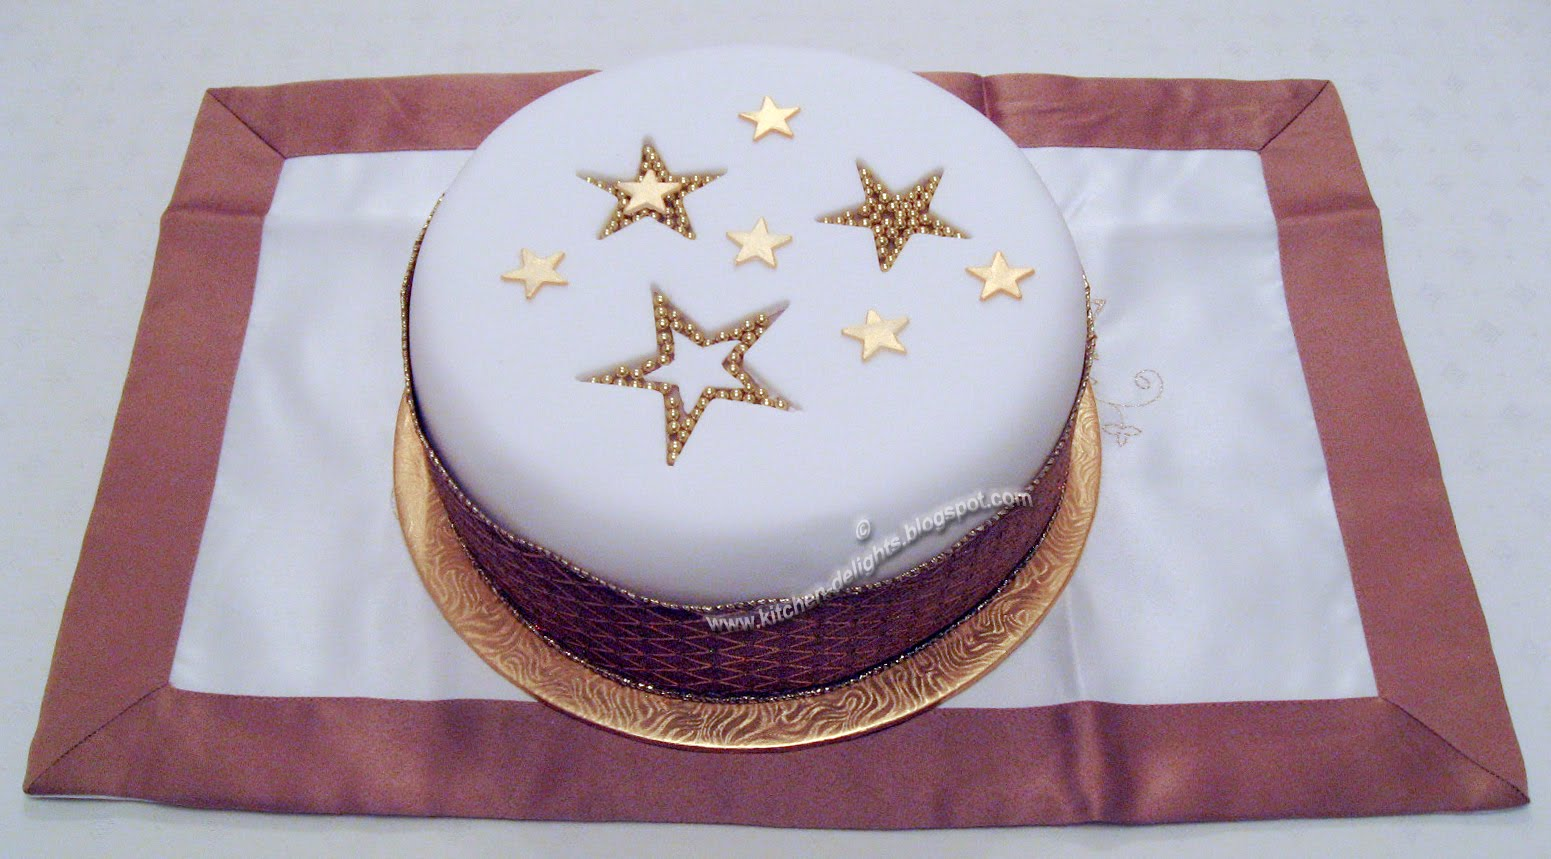 Christmas Cake Decoration With Stars : Kitchen Delights: ICED CHRISTMAS STAR CAKE